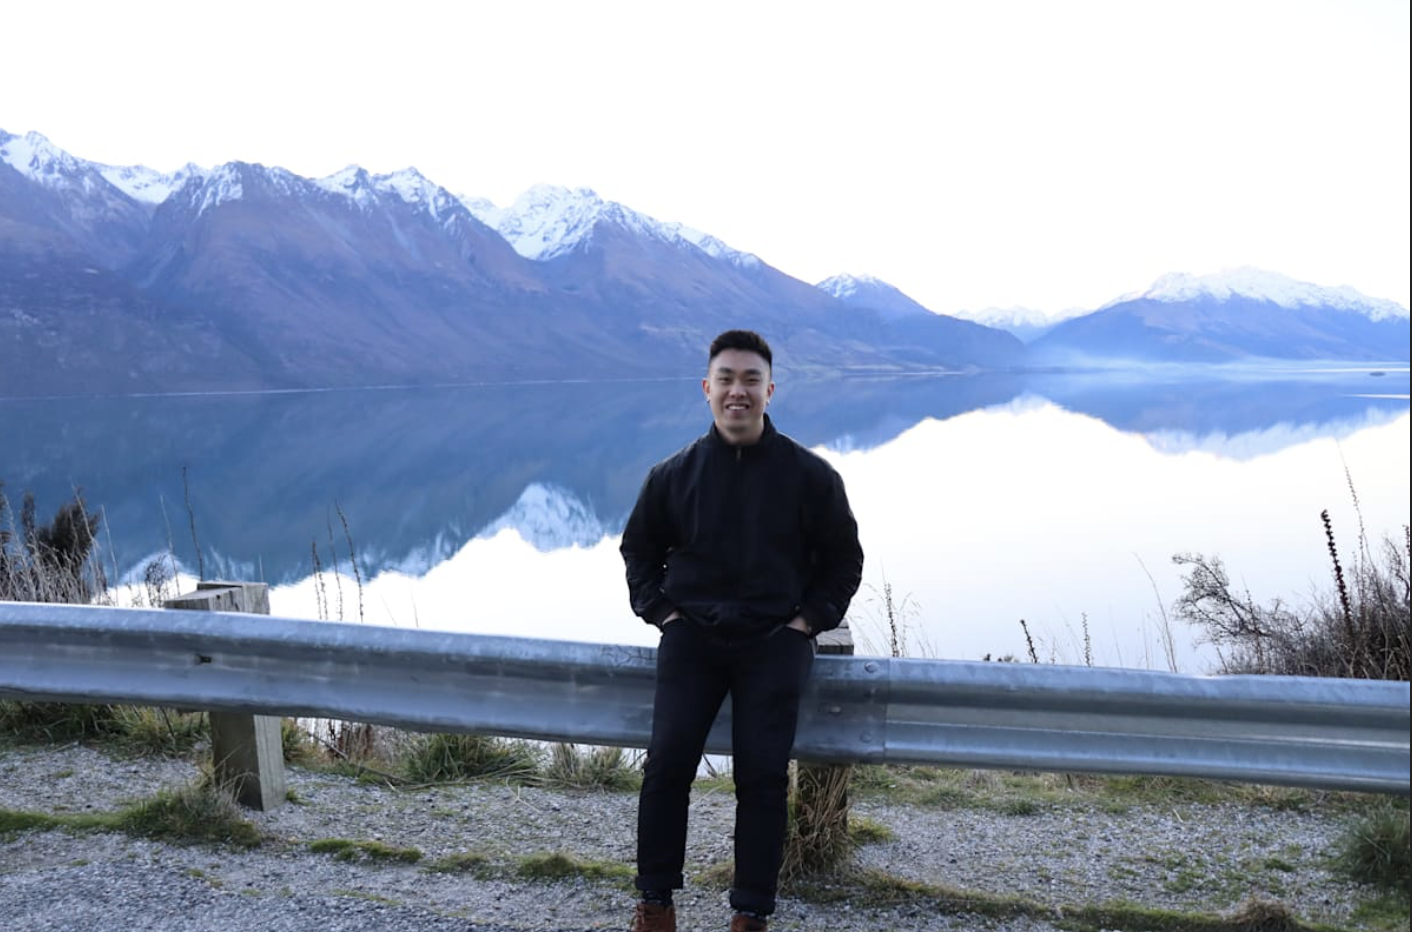 From Depths of Despair to Shining Success, New Zealand Born E-Commerce Entrepreneur Andy Khun Shares Inspiring Story